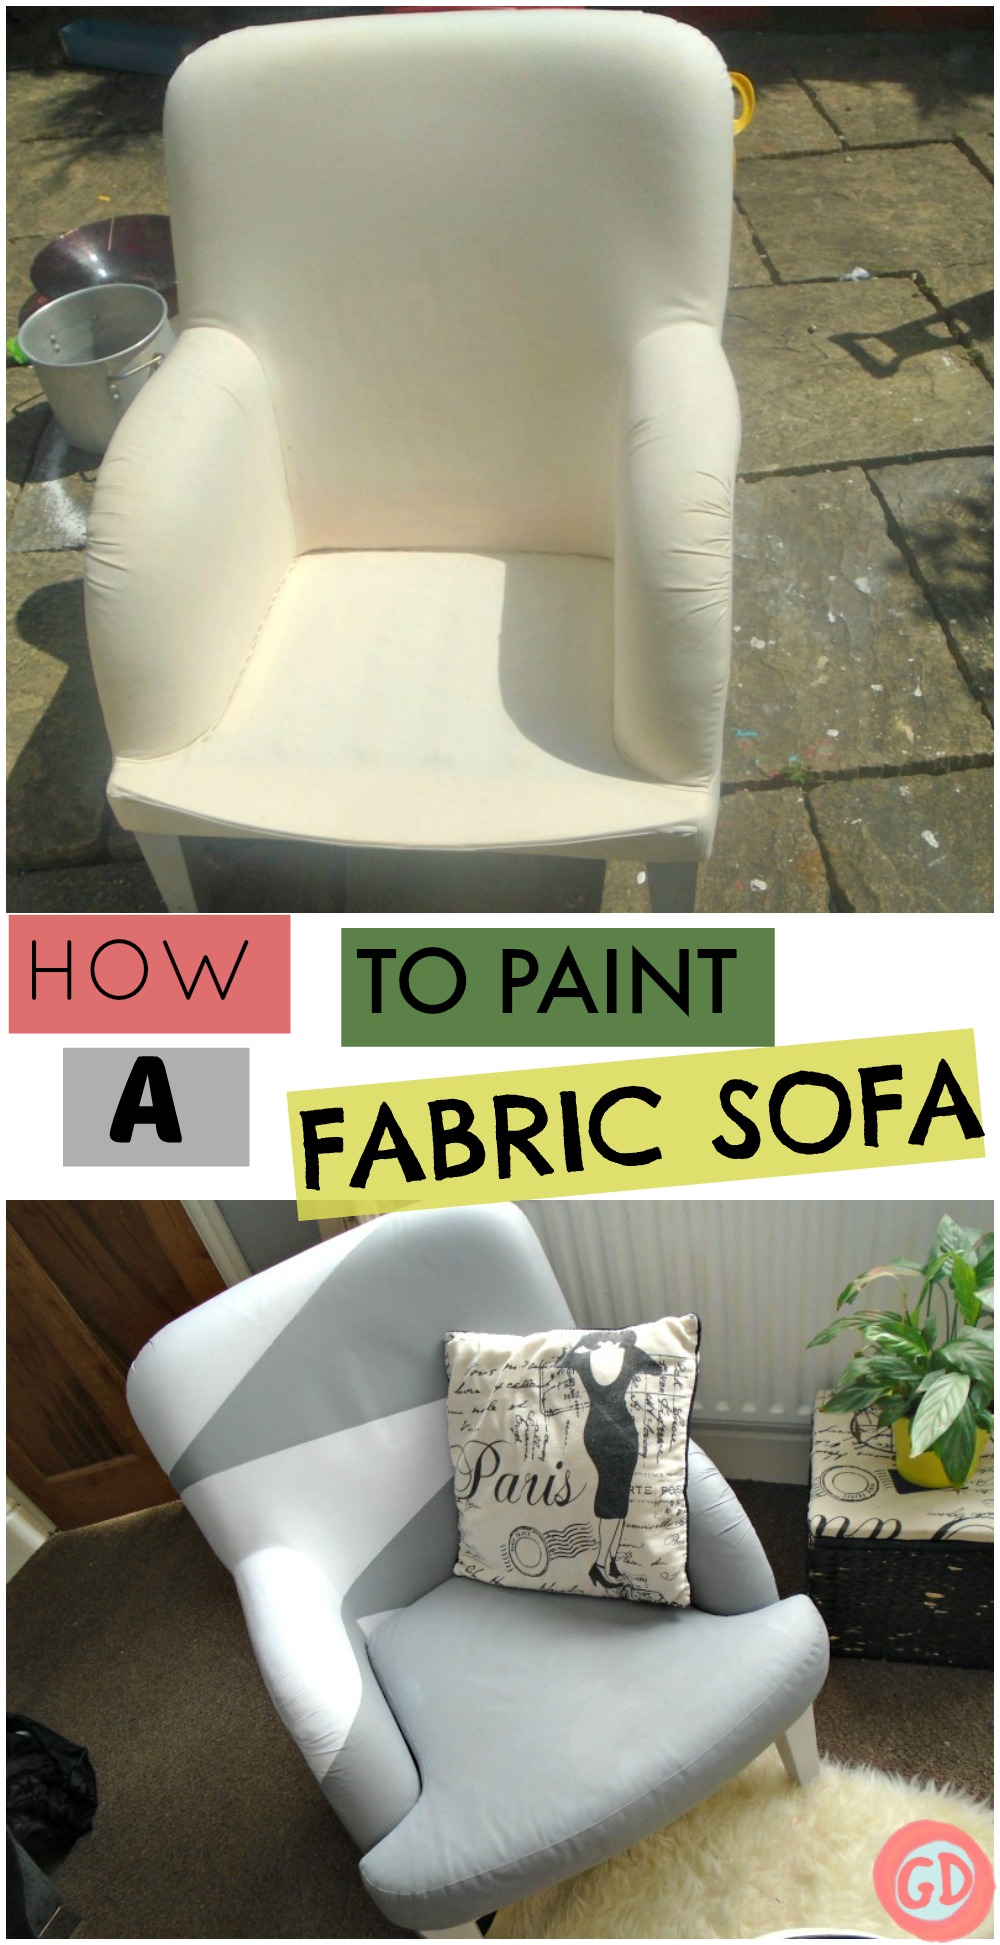 How To Paint A Fabric Sofa